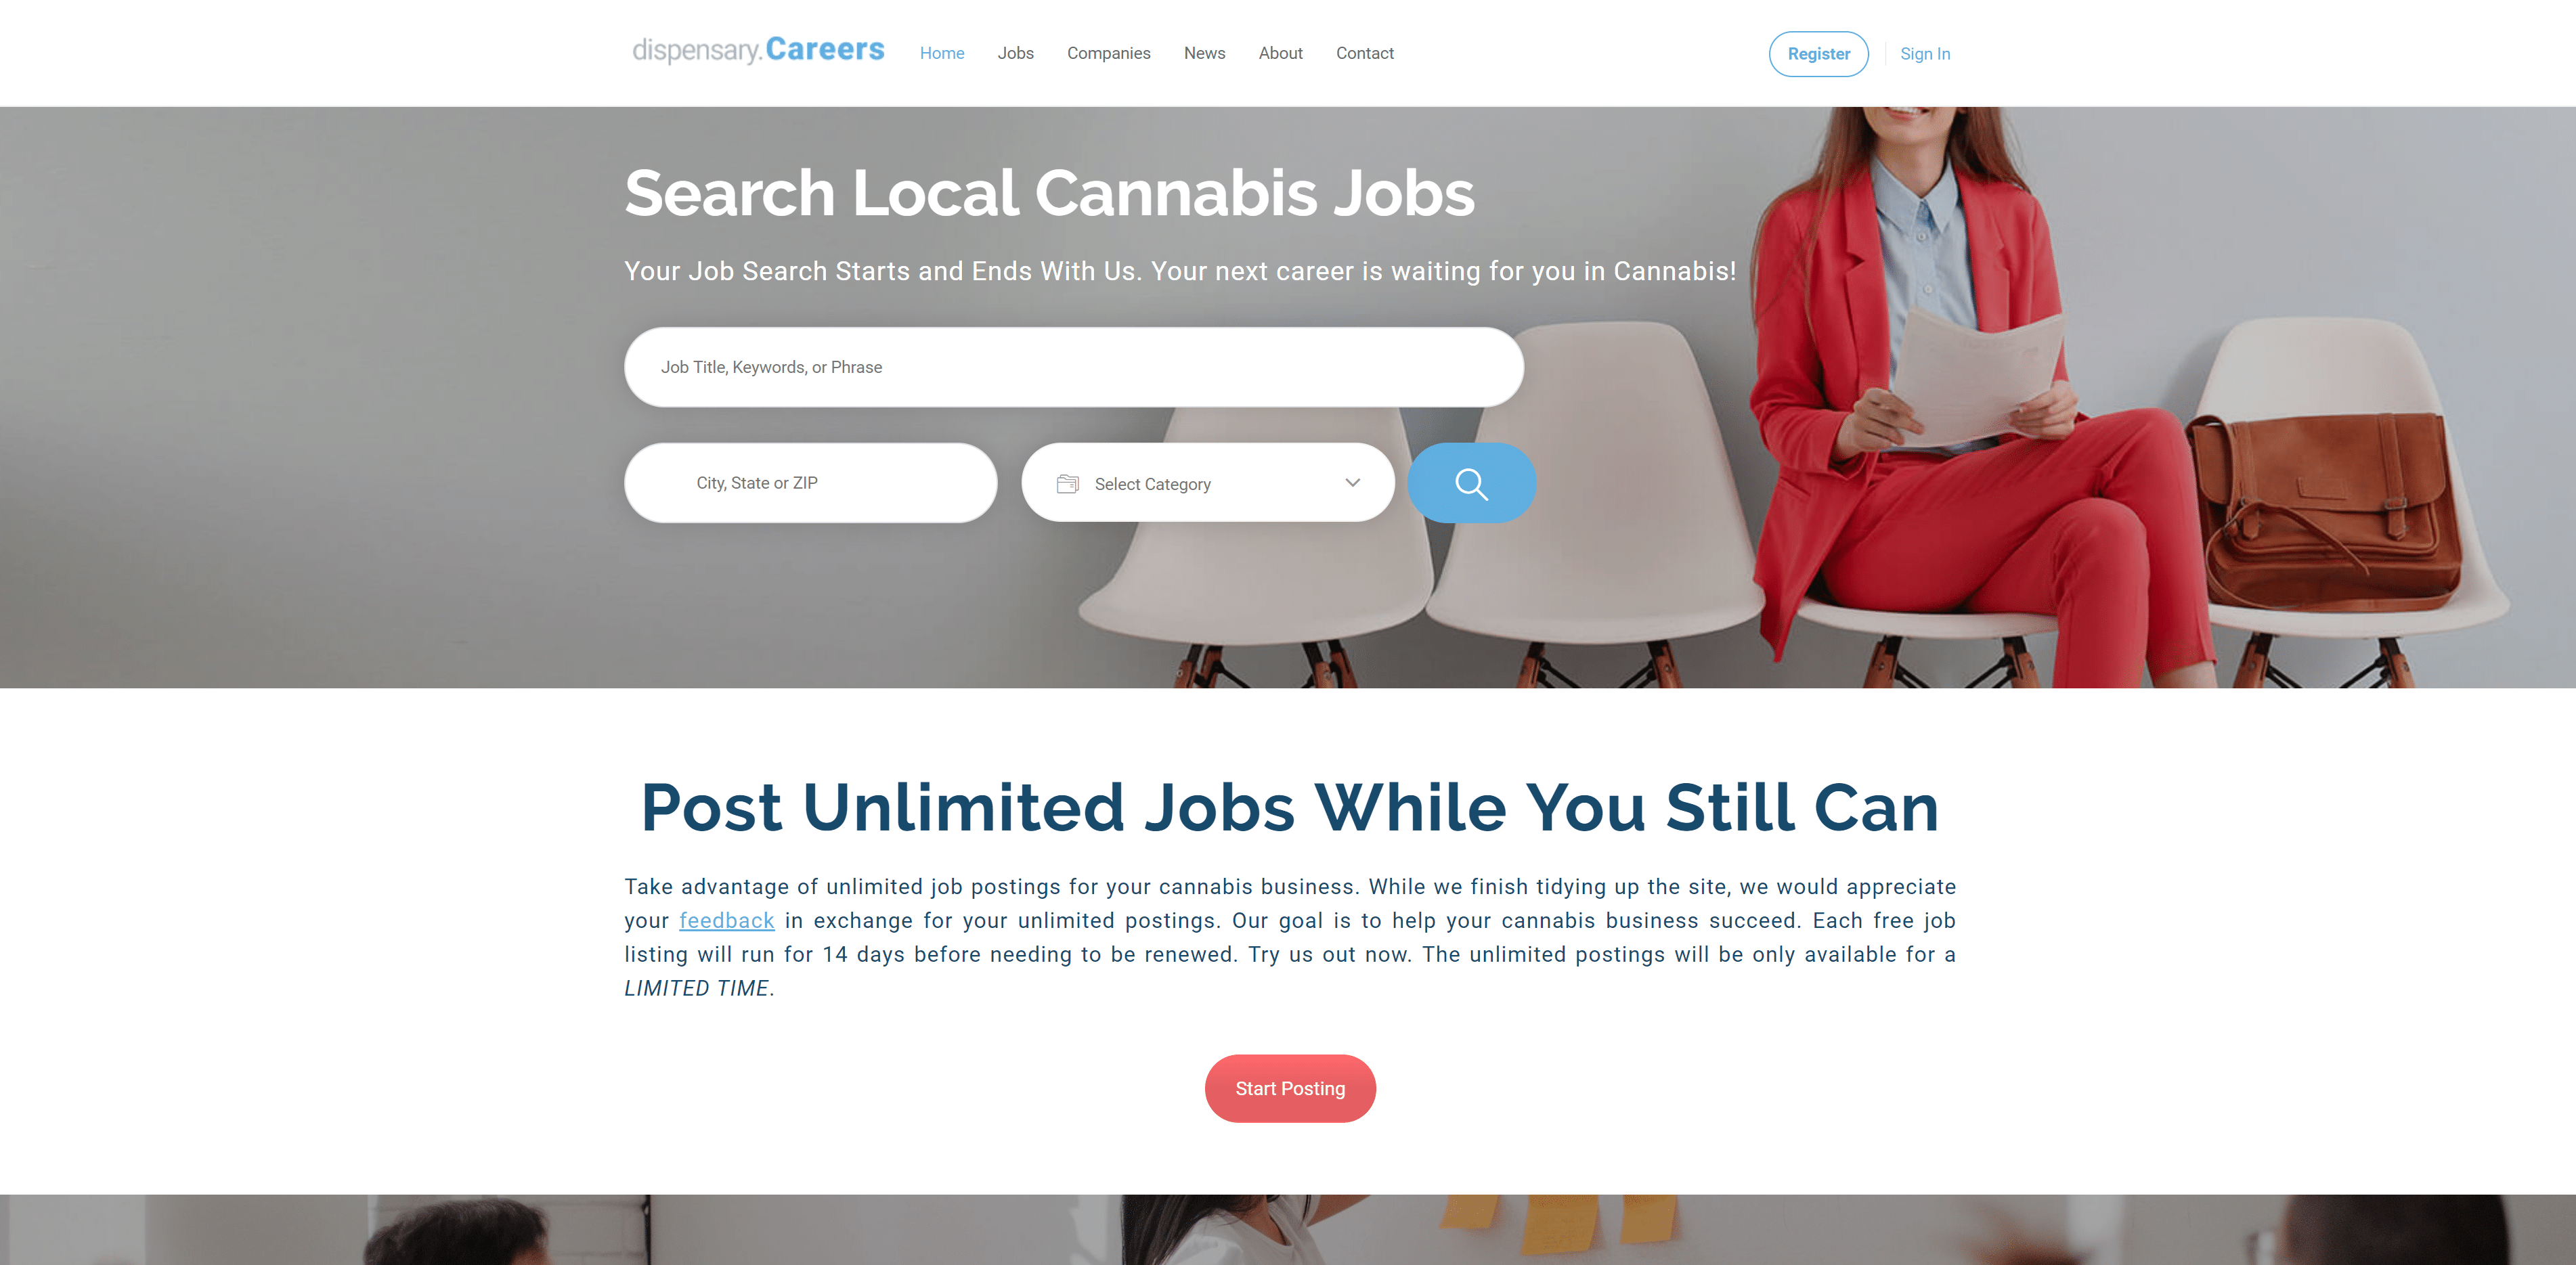 Dispensary Careers